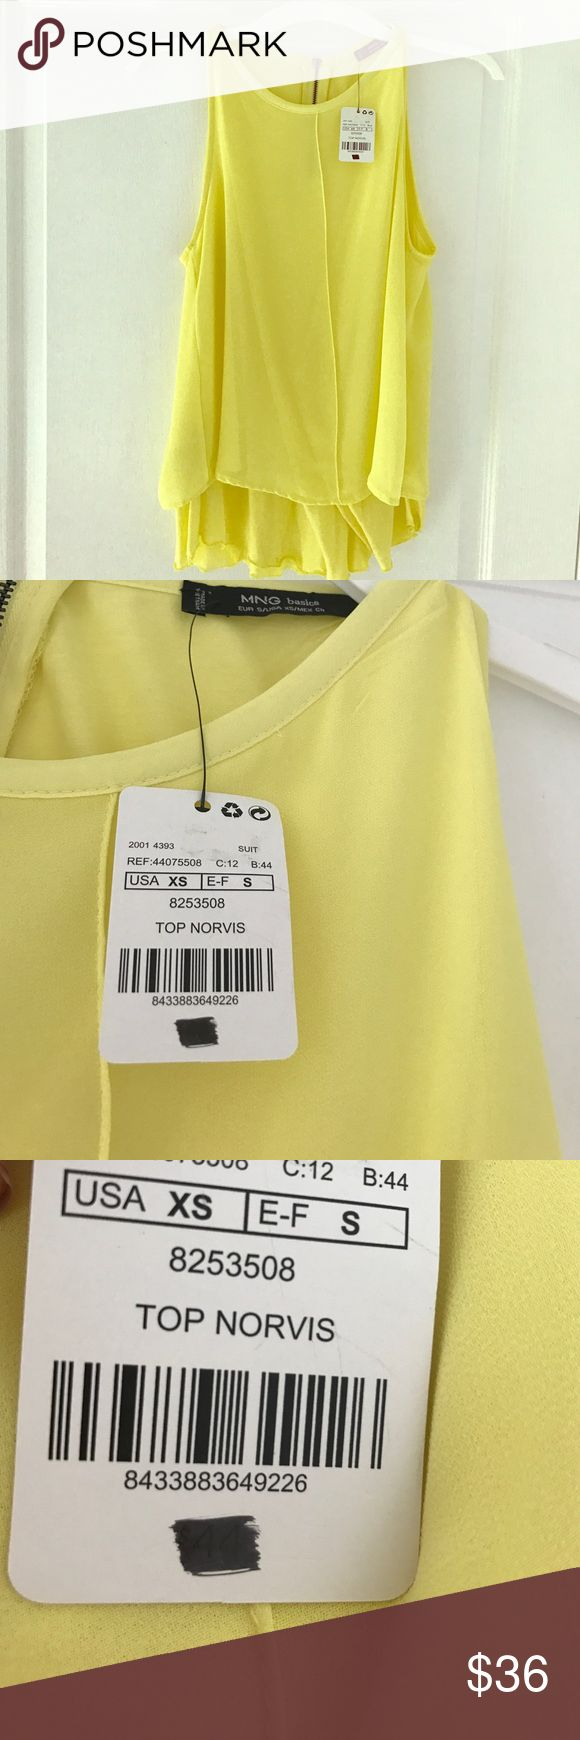 Brand new yellow flowy top from Mango Top has never been worn, still has tags on it. Zipper closure in the back Mango Tops Blouses